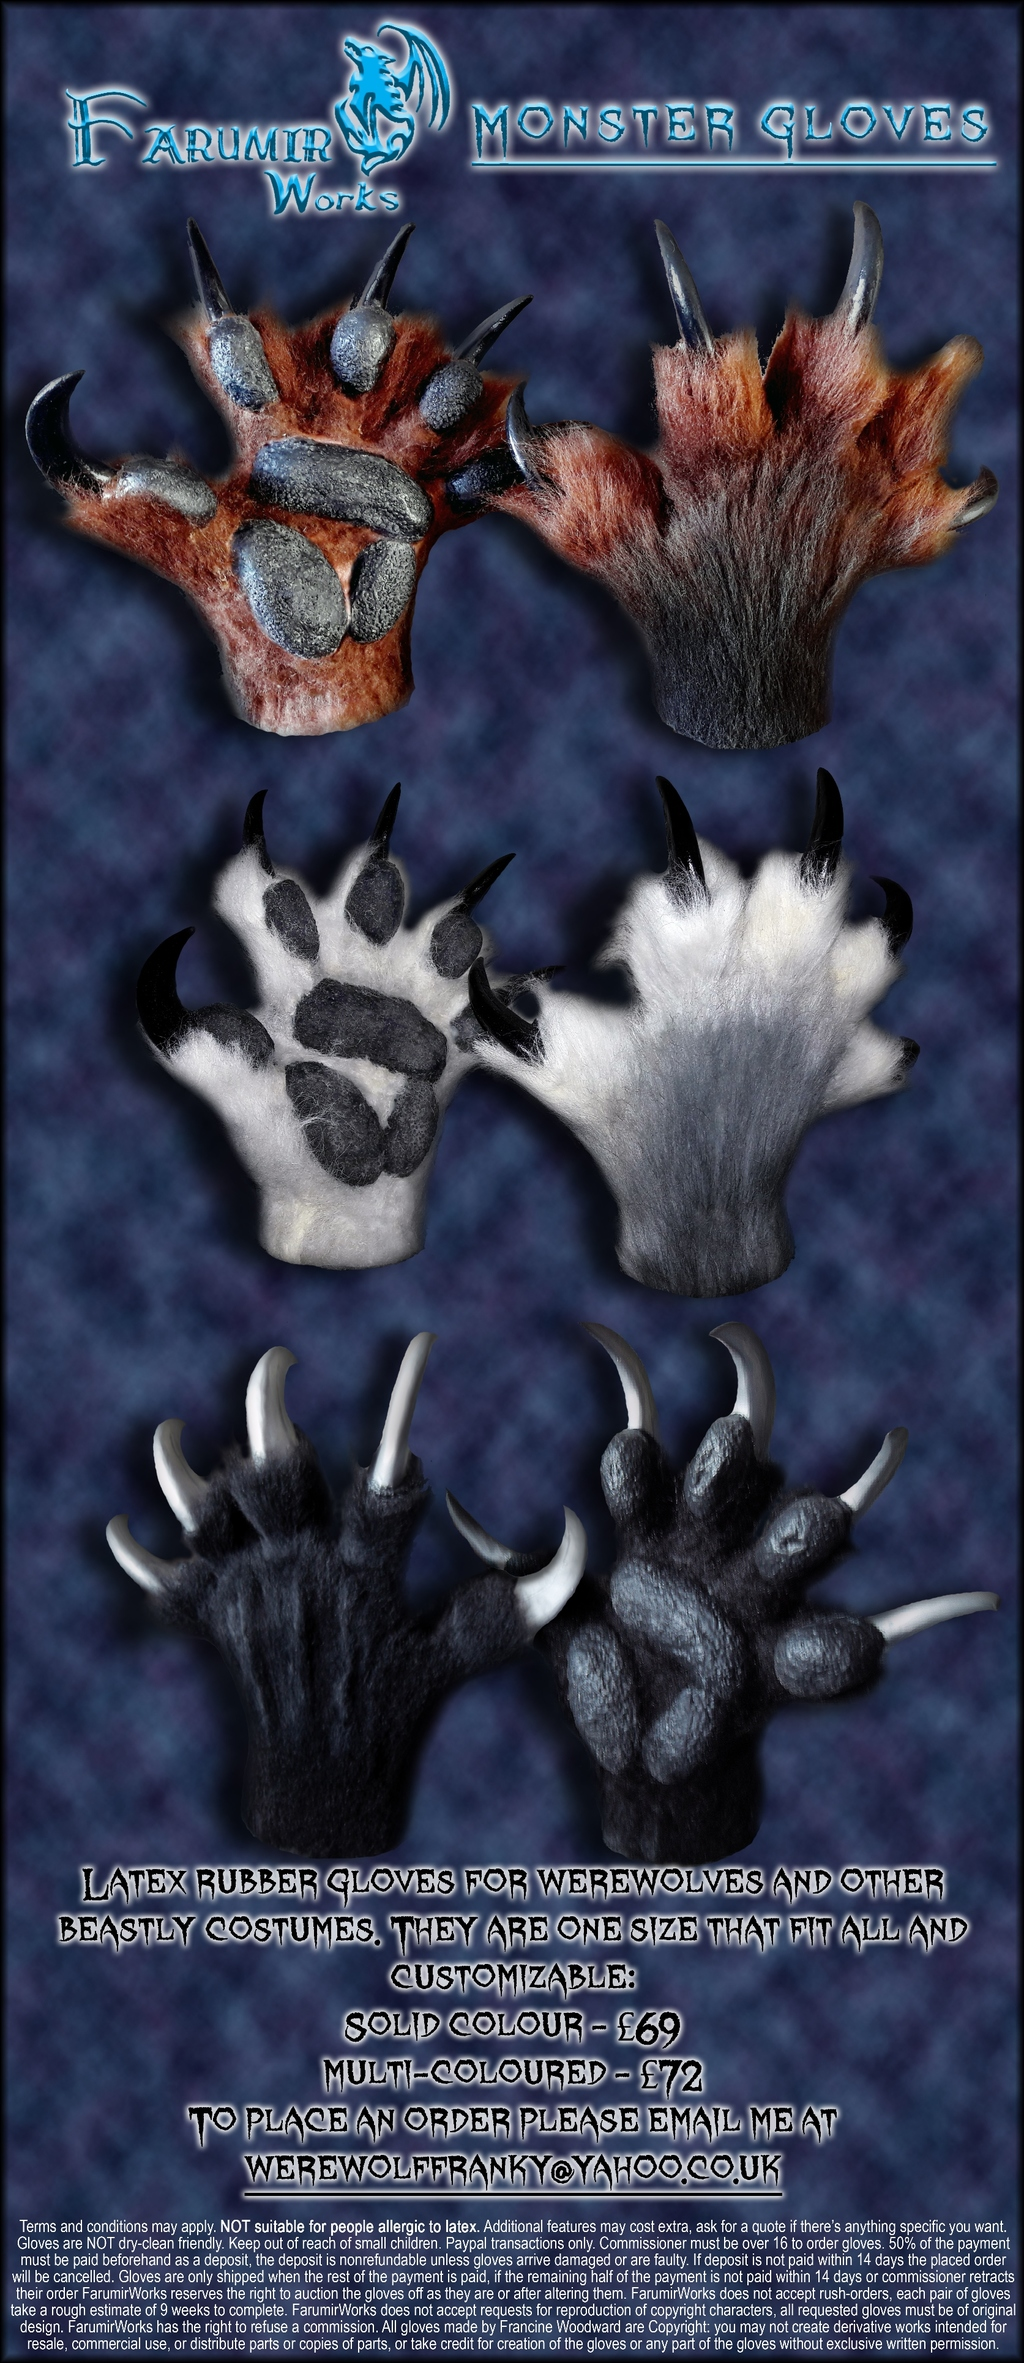 FarumirWorks - Monster Paws commissions prices